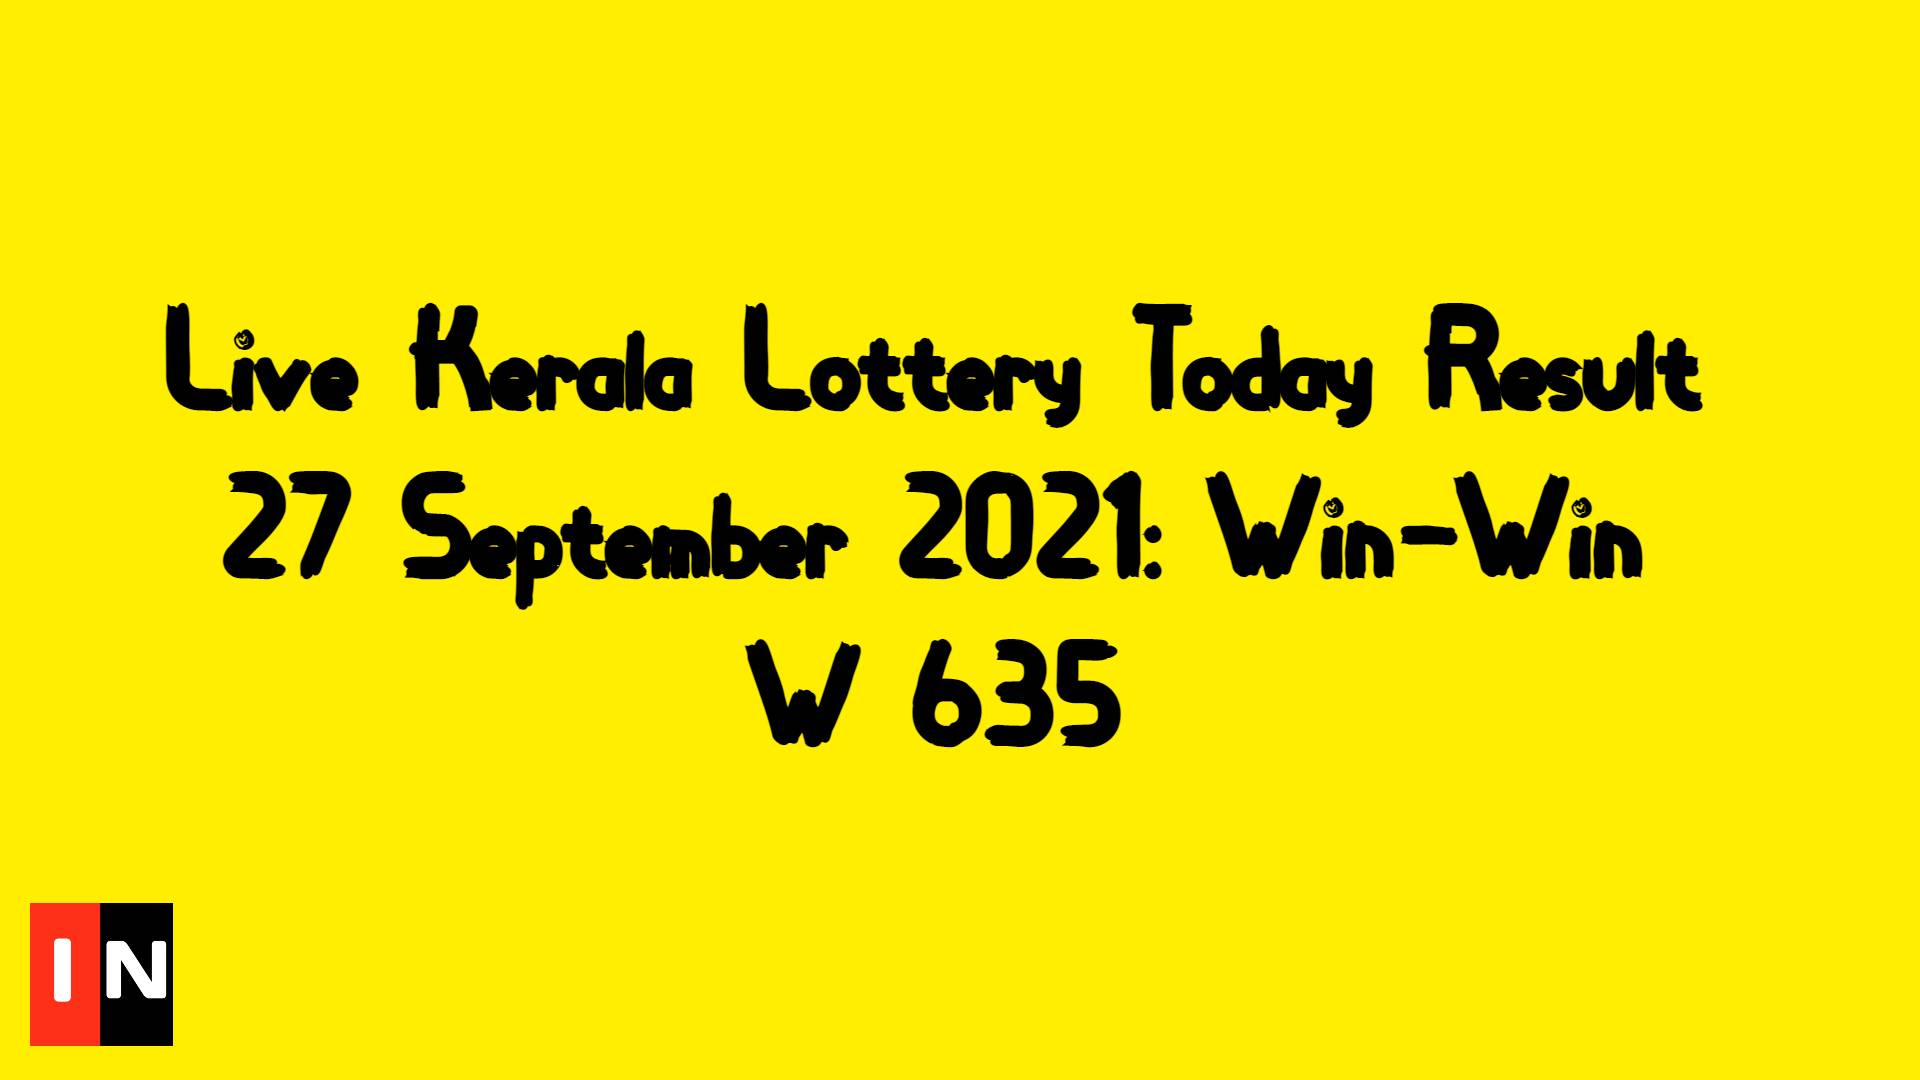 Live Kerala Lottery Today Result 27 September 2021_ Win-Win W 635